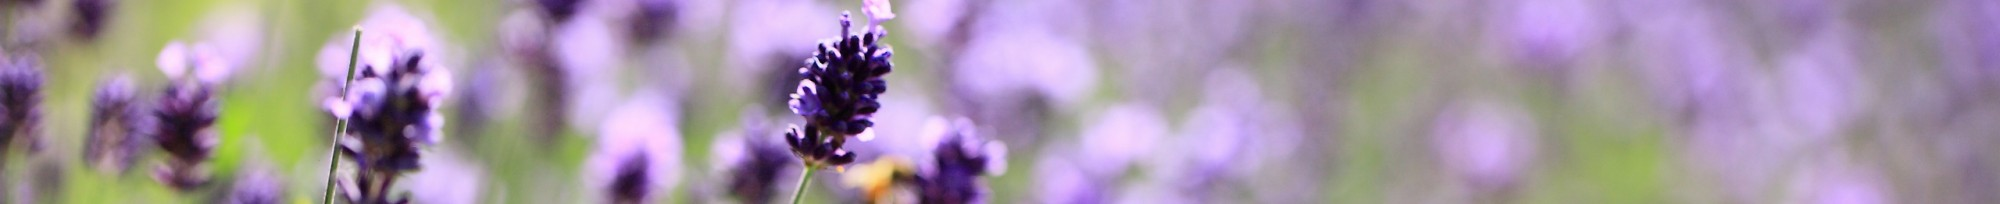 cropped-lavender-lavender-lilac-purple-flowers-field-meadow-close-up-blurred.jpg